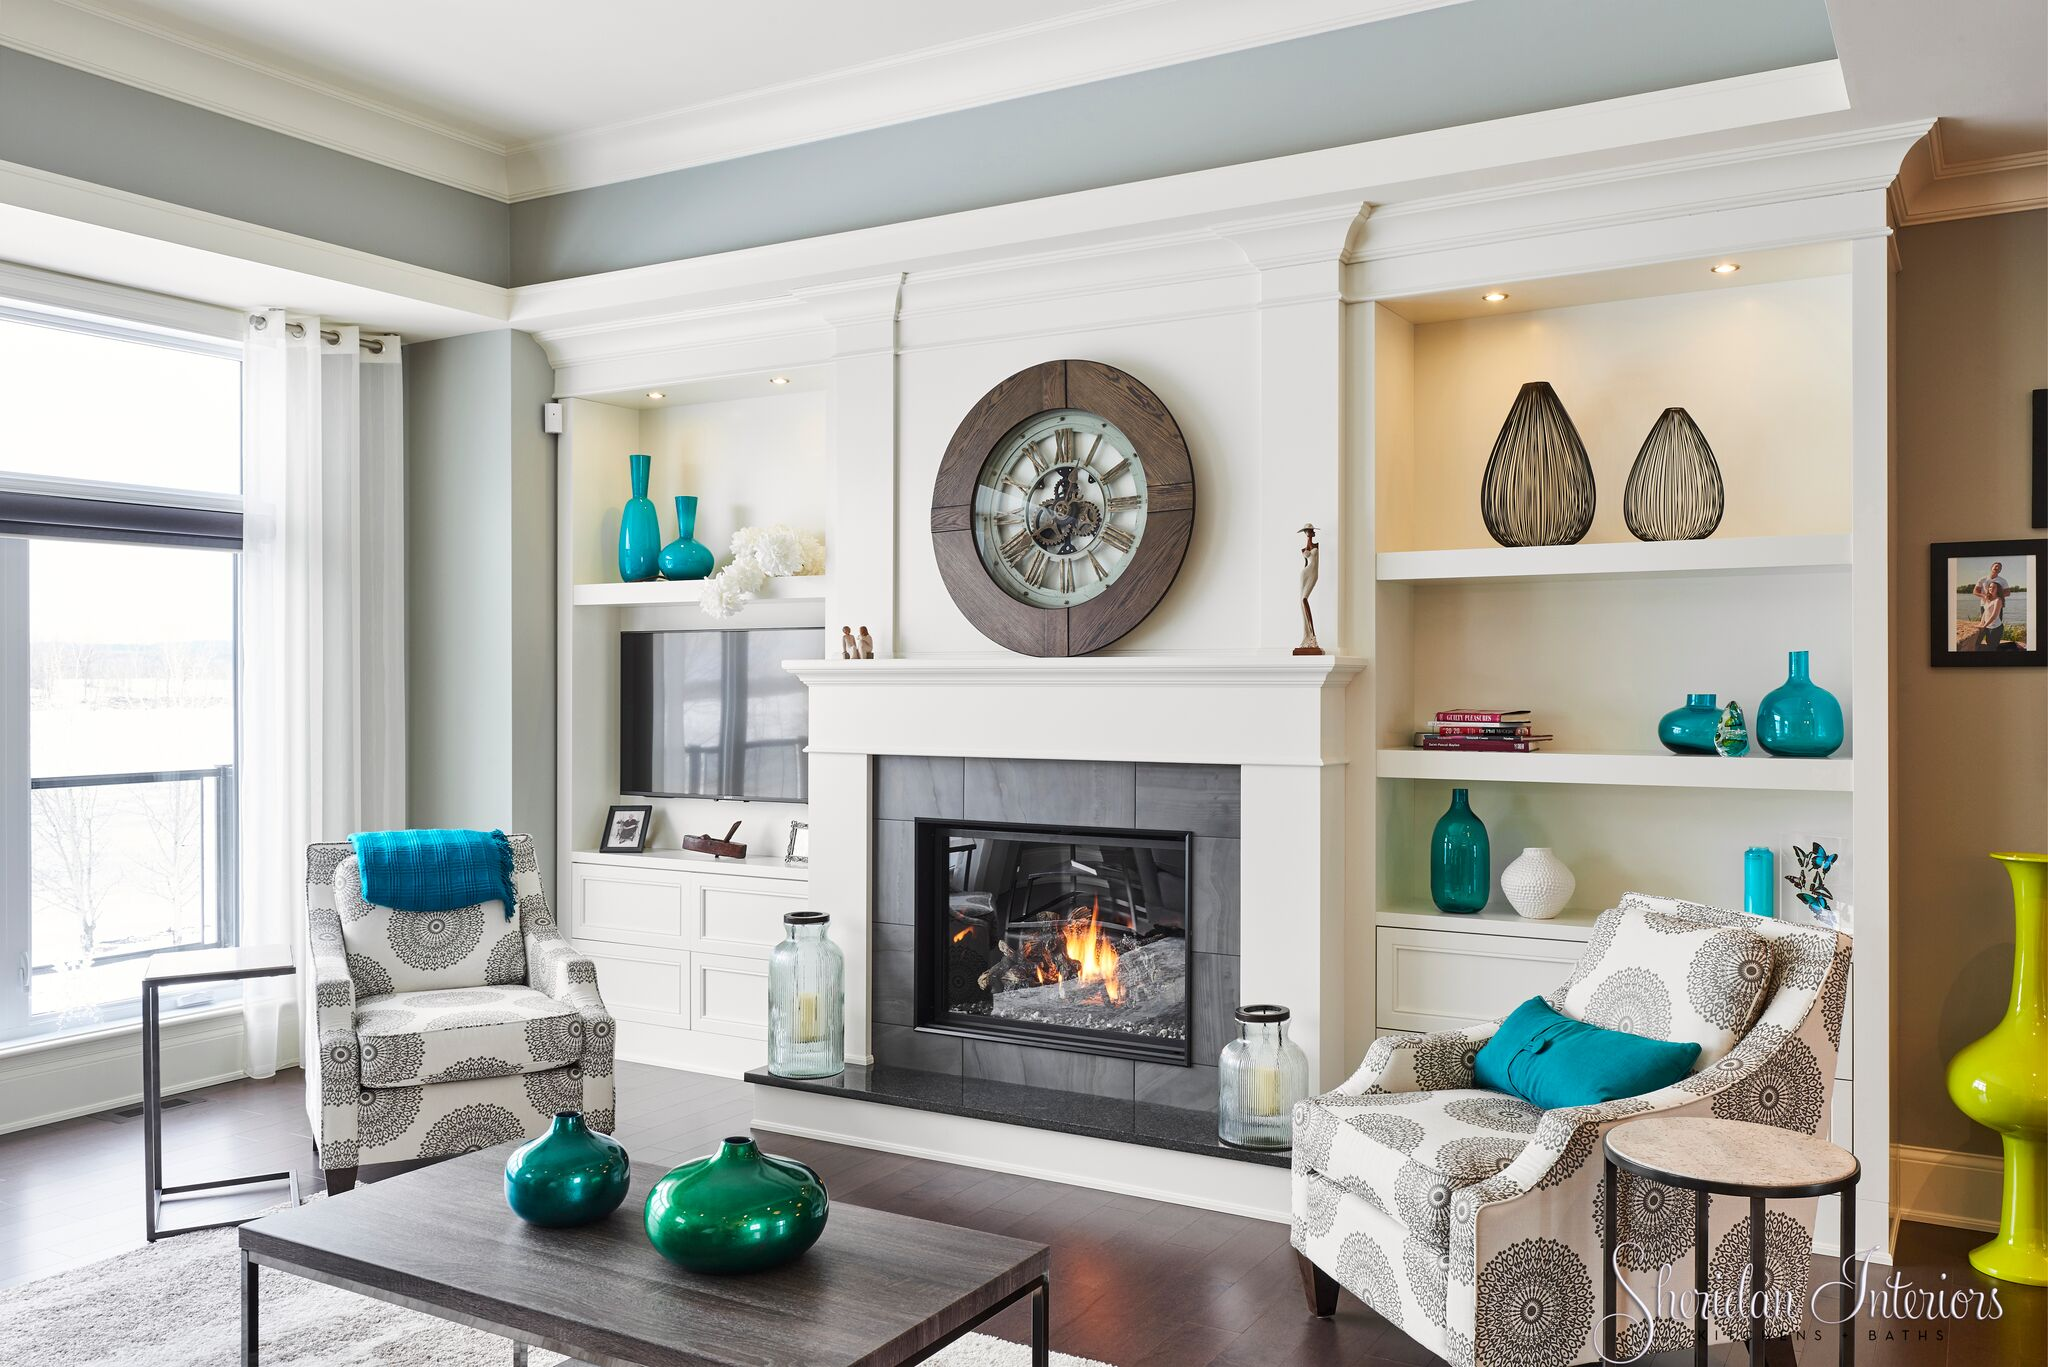 Great Room with Tray Ceiling - Sheridan Interiors